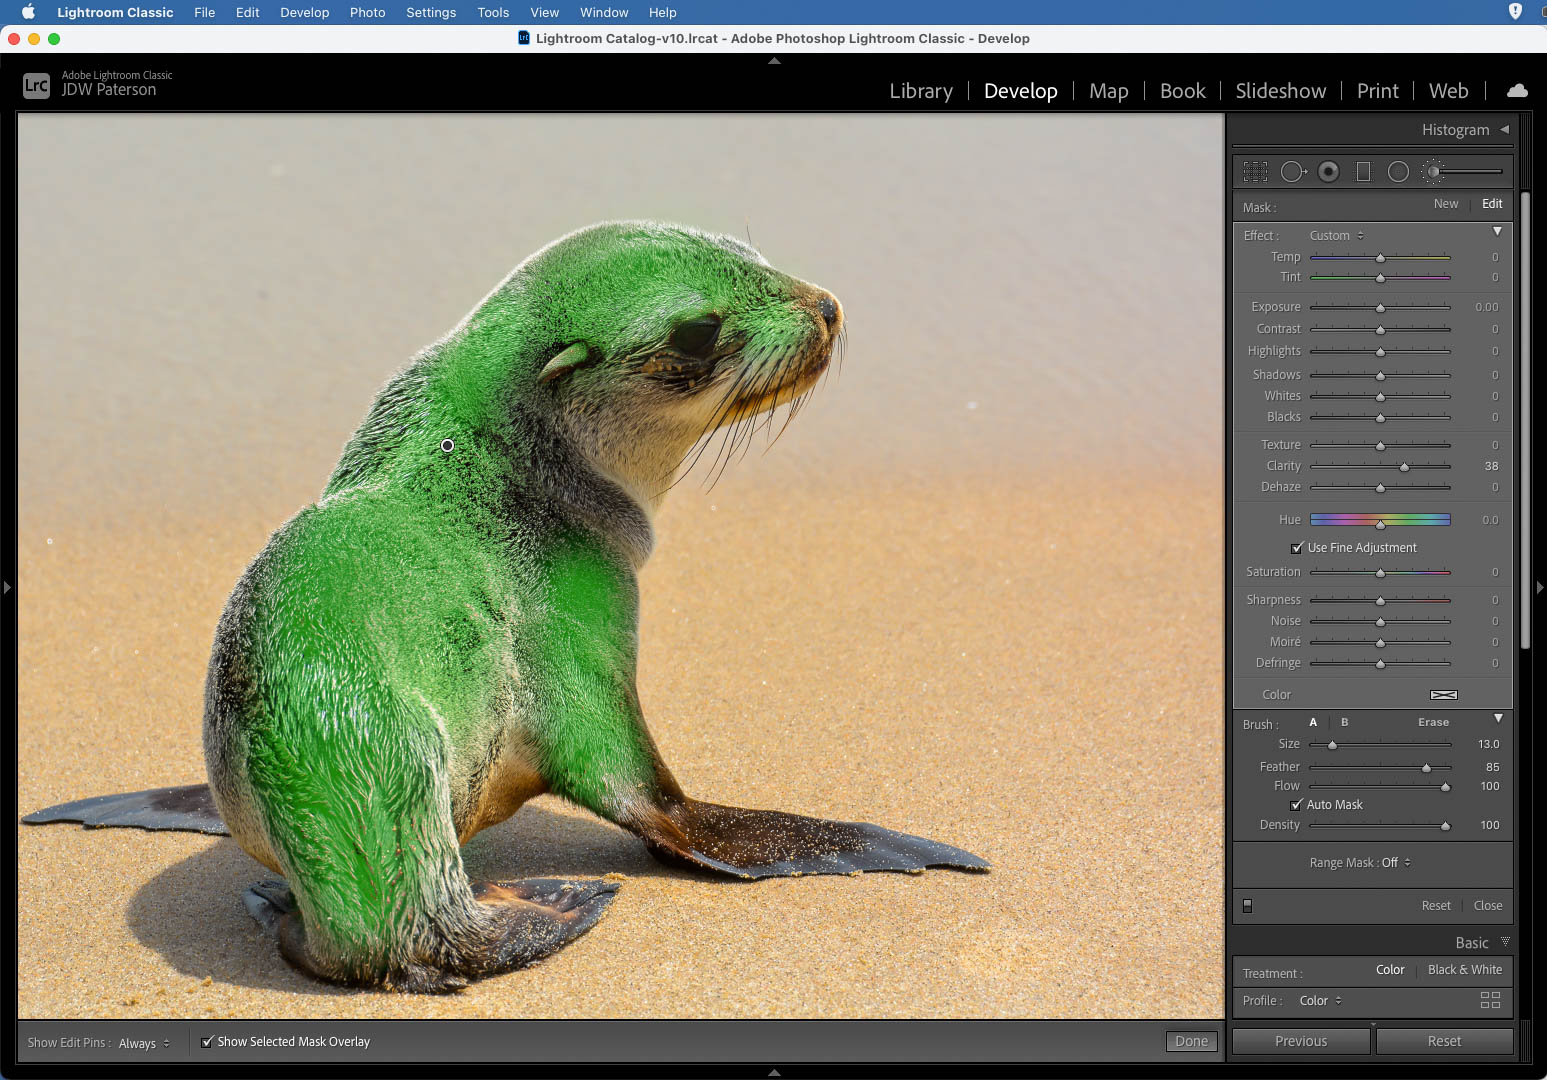 Painting with the Clarity tool as seen in Lightroom